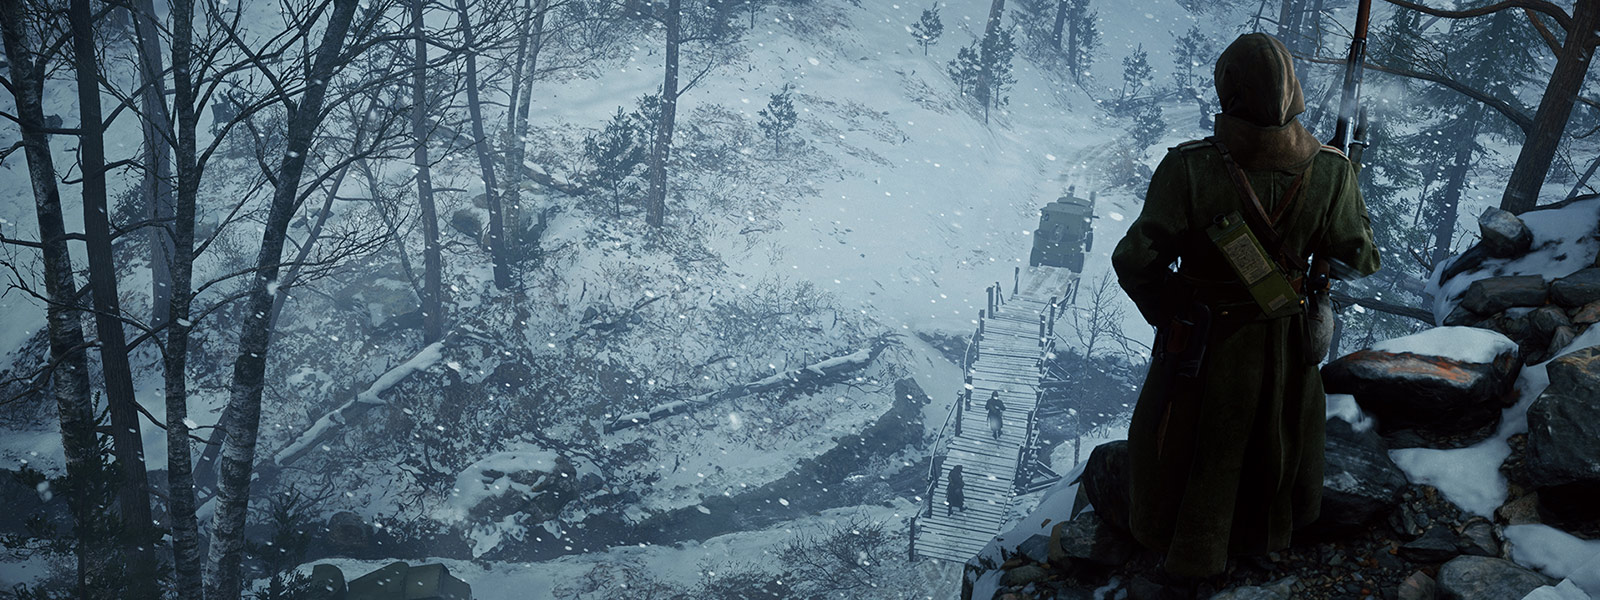 Back view of a sniper overlooking soldiers crossing a bridge on the Lupkow Pass